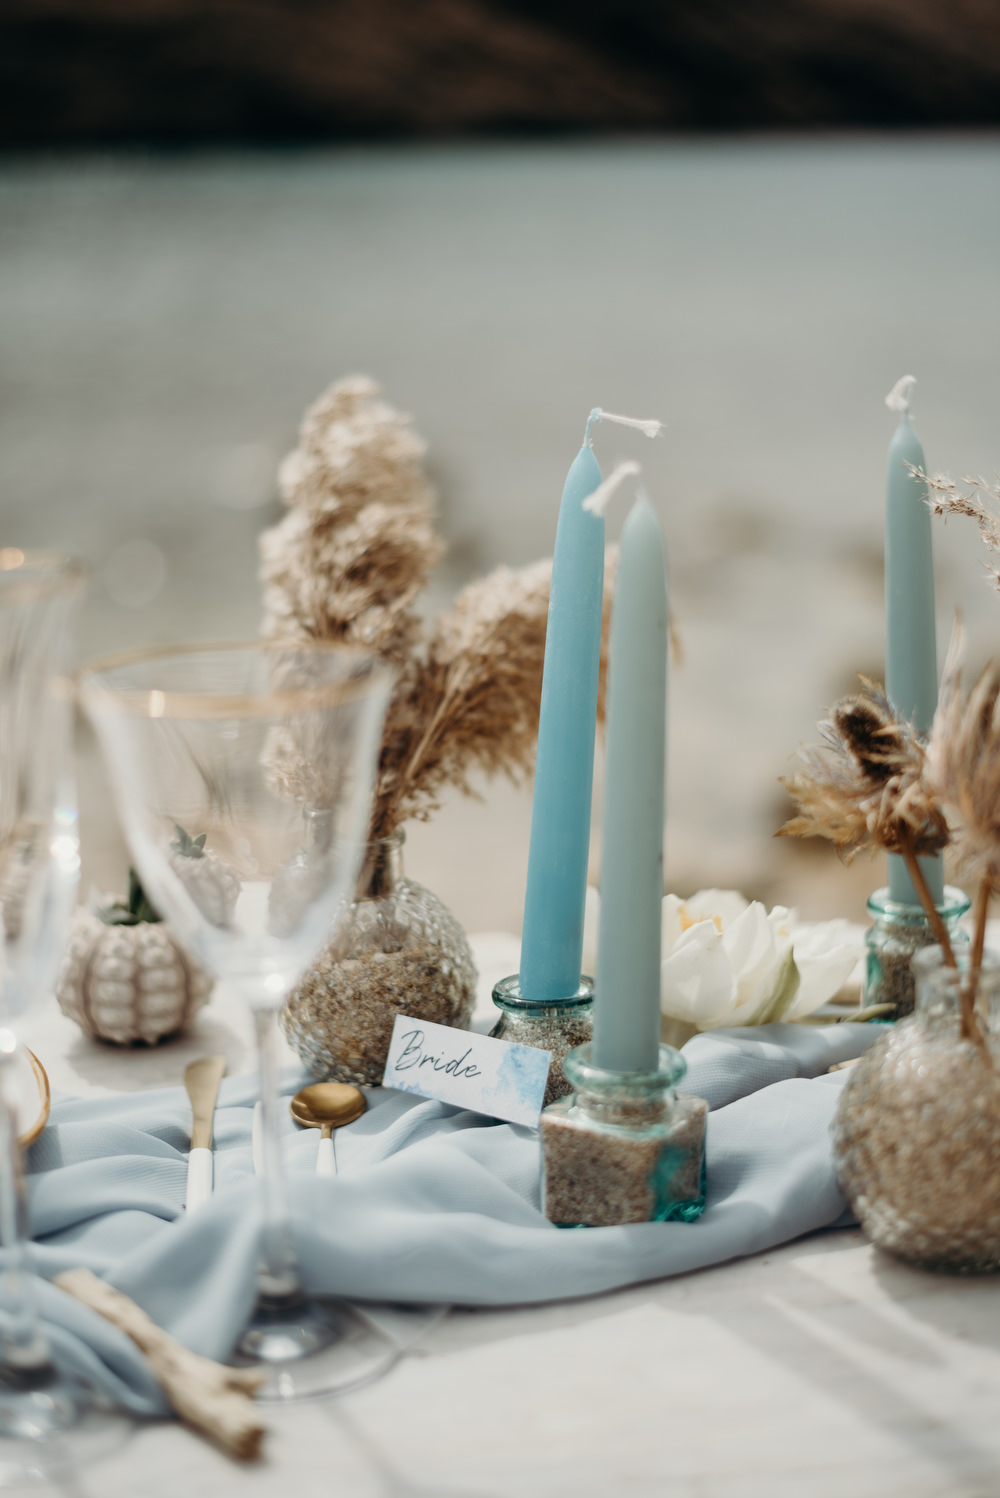 Outdoor Wild Nature Destination Spain Europe Coastal Styled Shoot Beach Table Elegant Styling | Blue Ibiza Elopement Ideas and Surprise Proposal Serena Genovese Photography